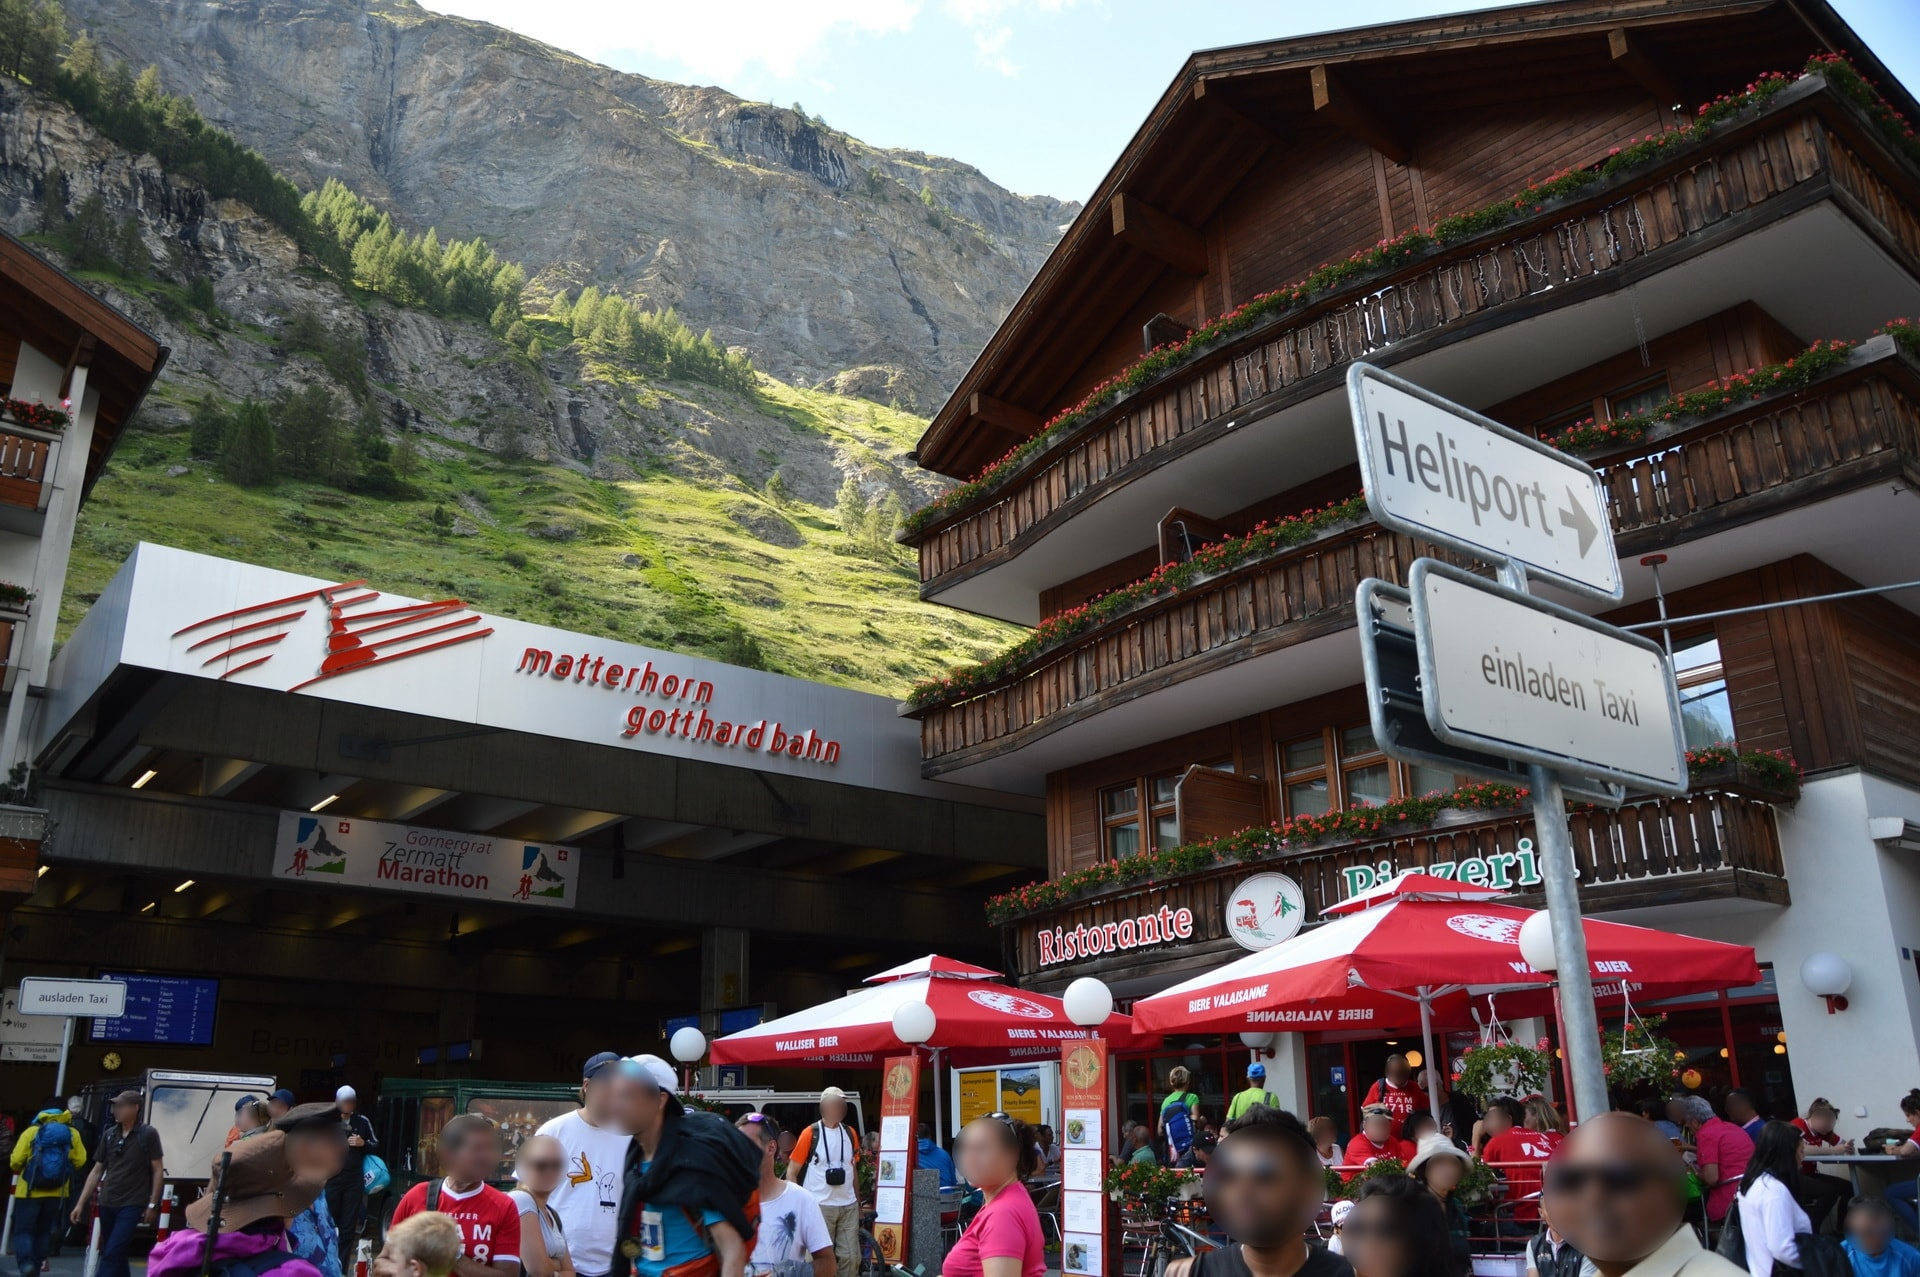 Zermatt's train station